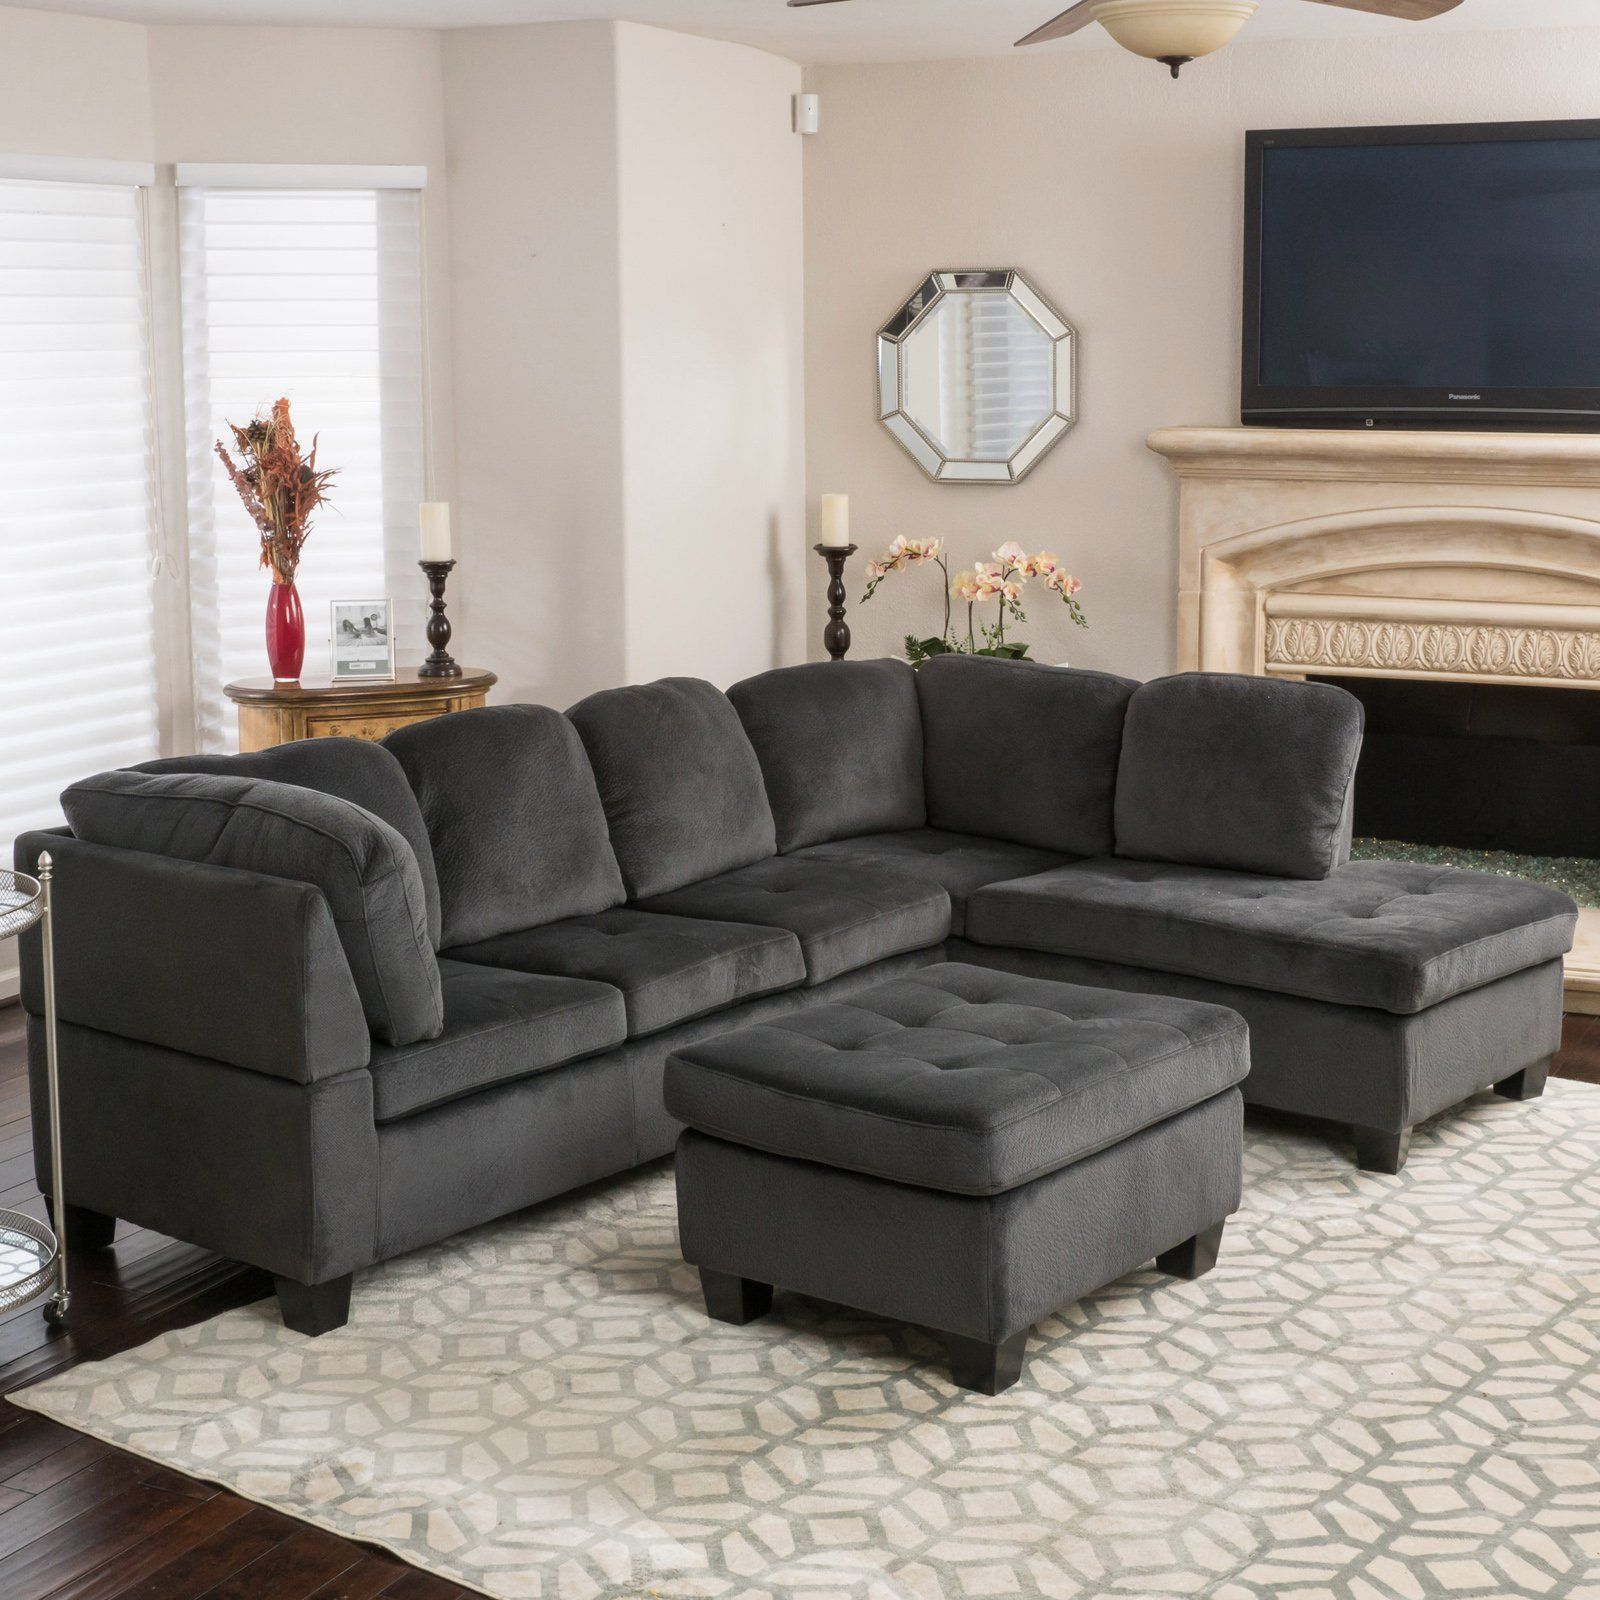 Best Selling Home Evan 3 Piece Sectional Sofa - 296314 | Products in ...